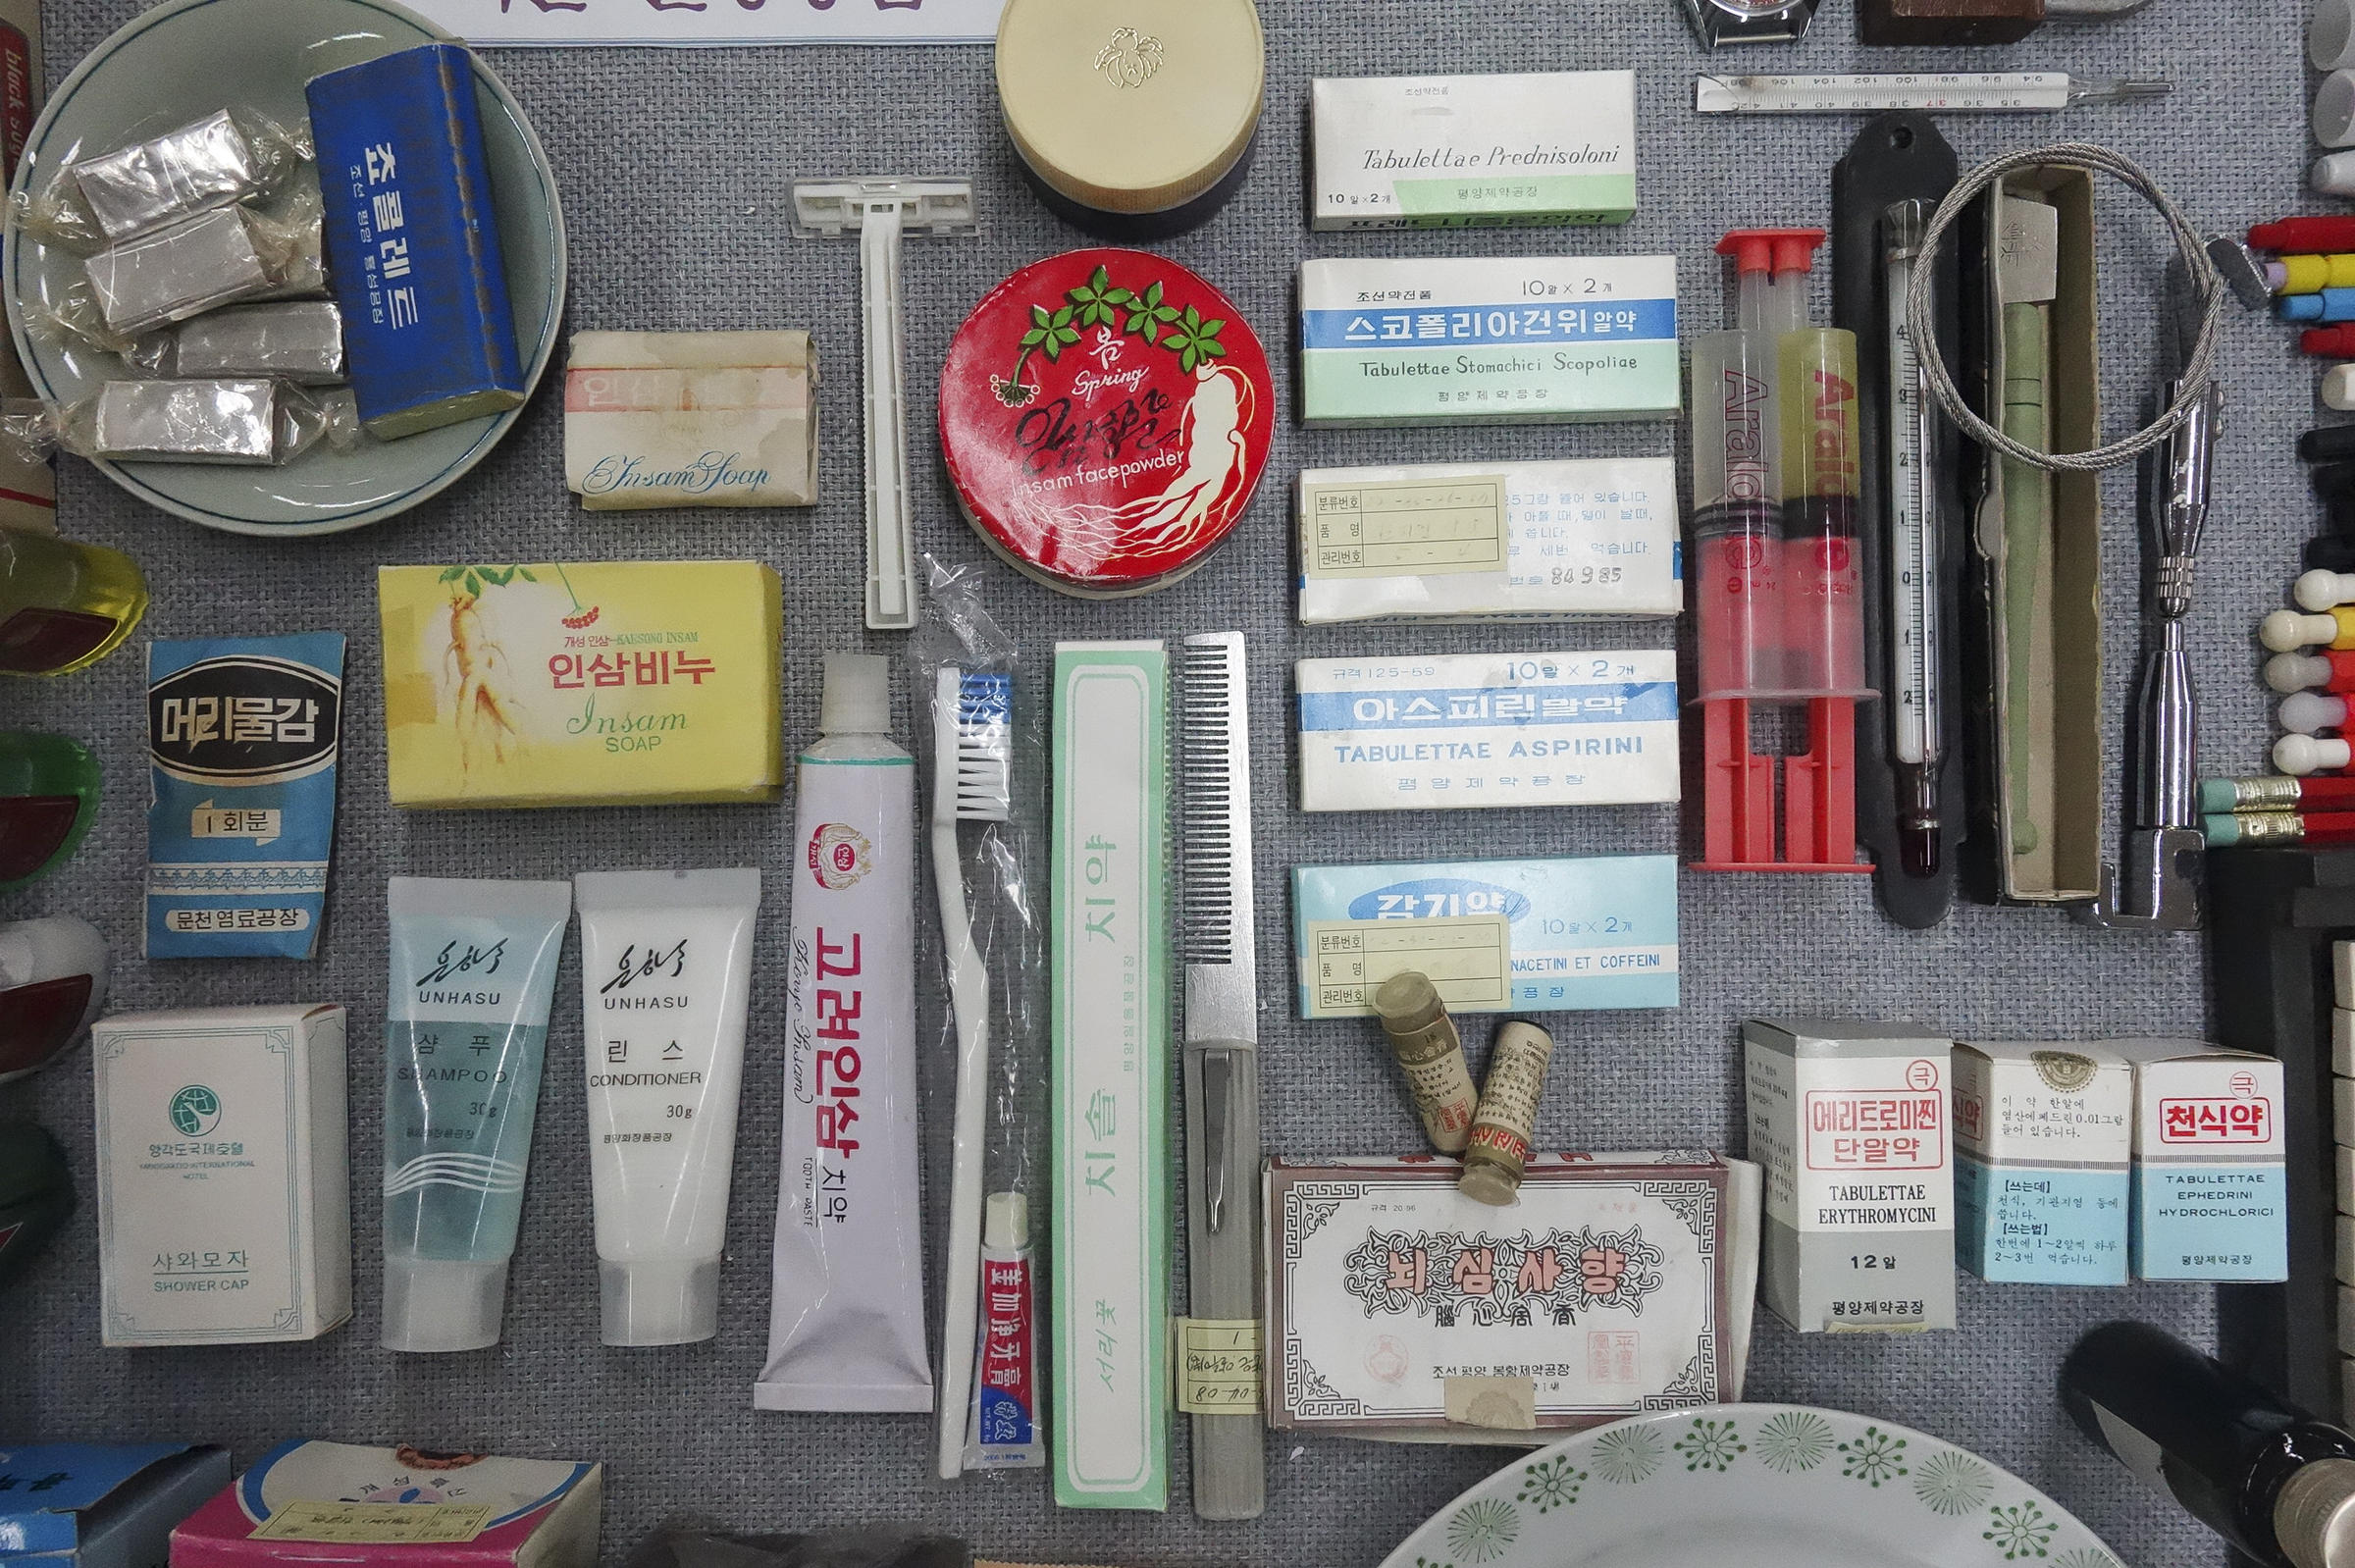 In The Heart Of Seoul A Trove North Korean Propaganda Knkx Korea Soap Library Displays Everyday Items From 1990s Insam Ginseng Is Used Toothpaste And Other Products